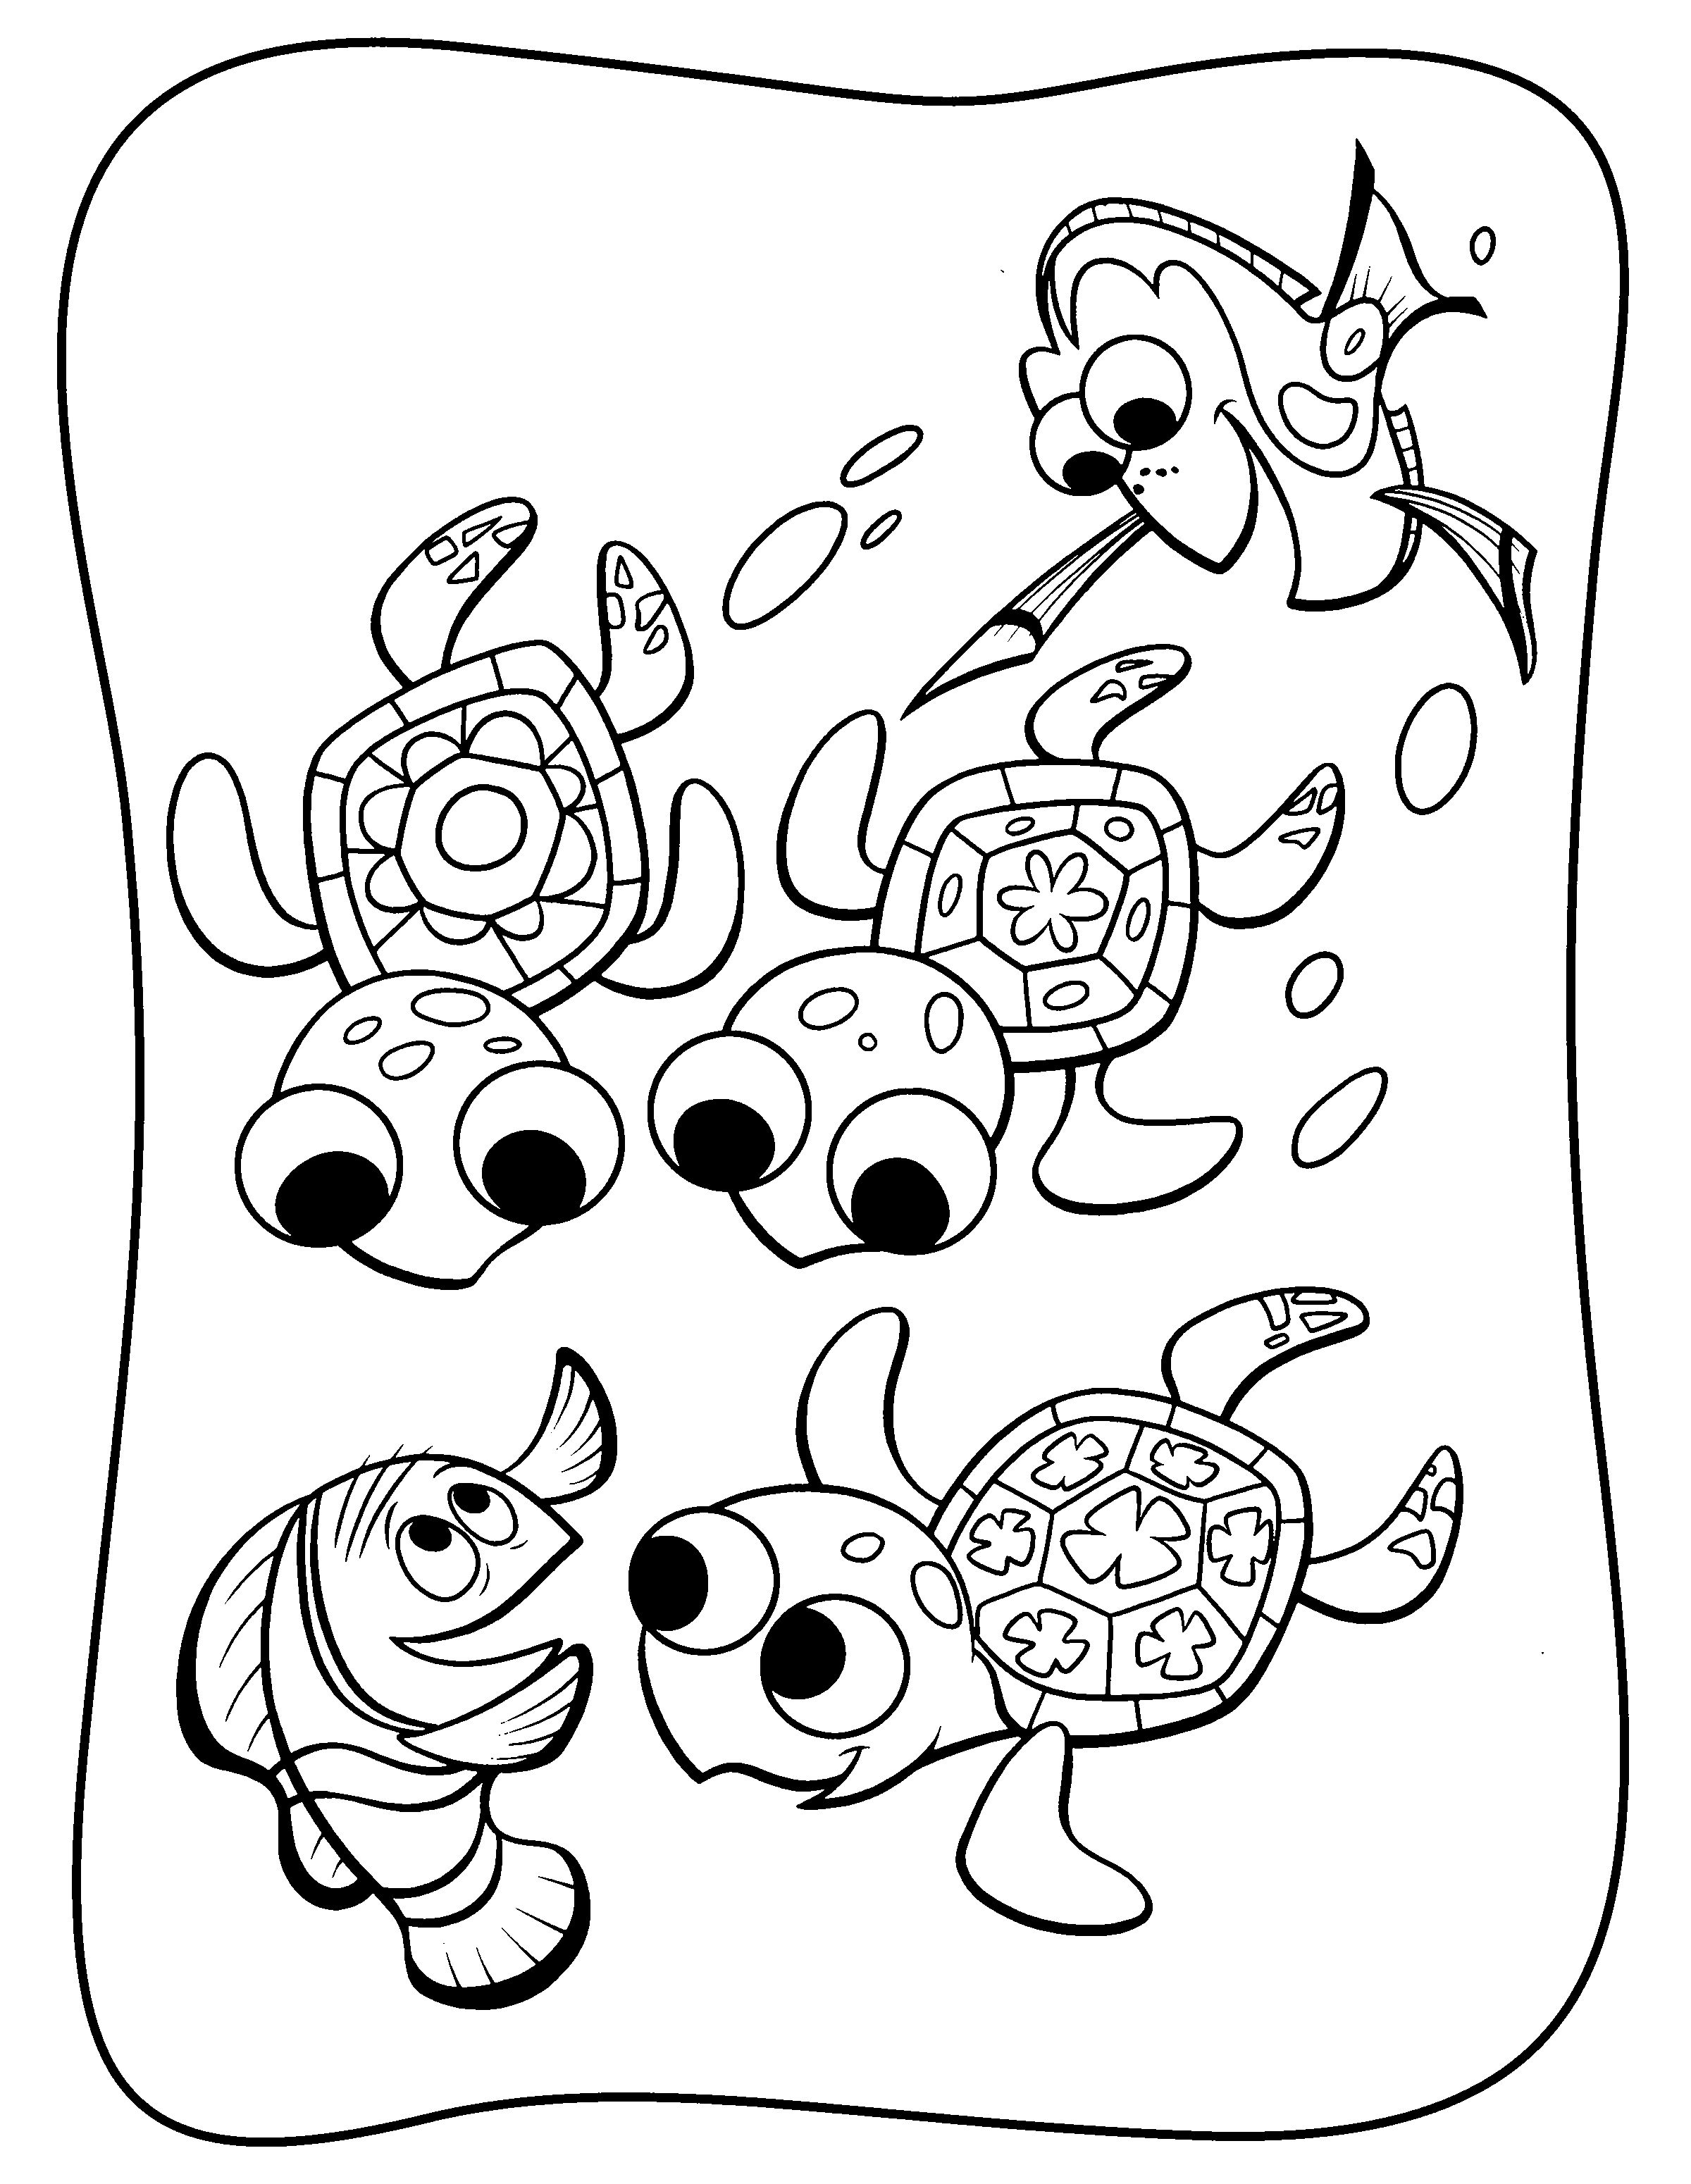 Dory coloring pages best coloring pages for kids Coloring book for kinder